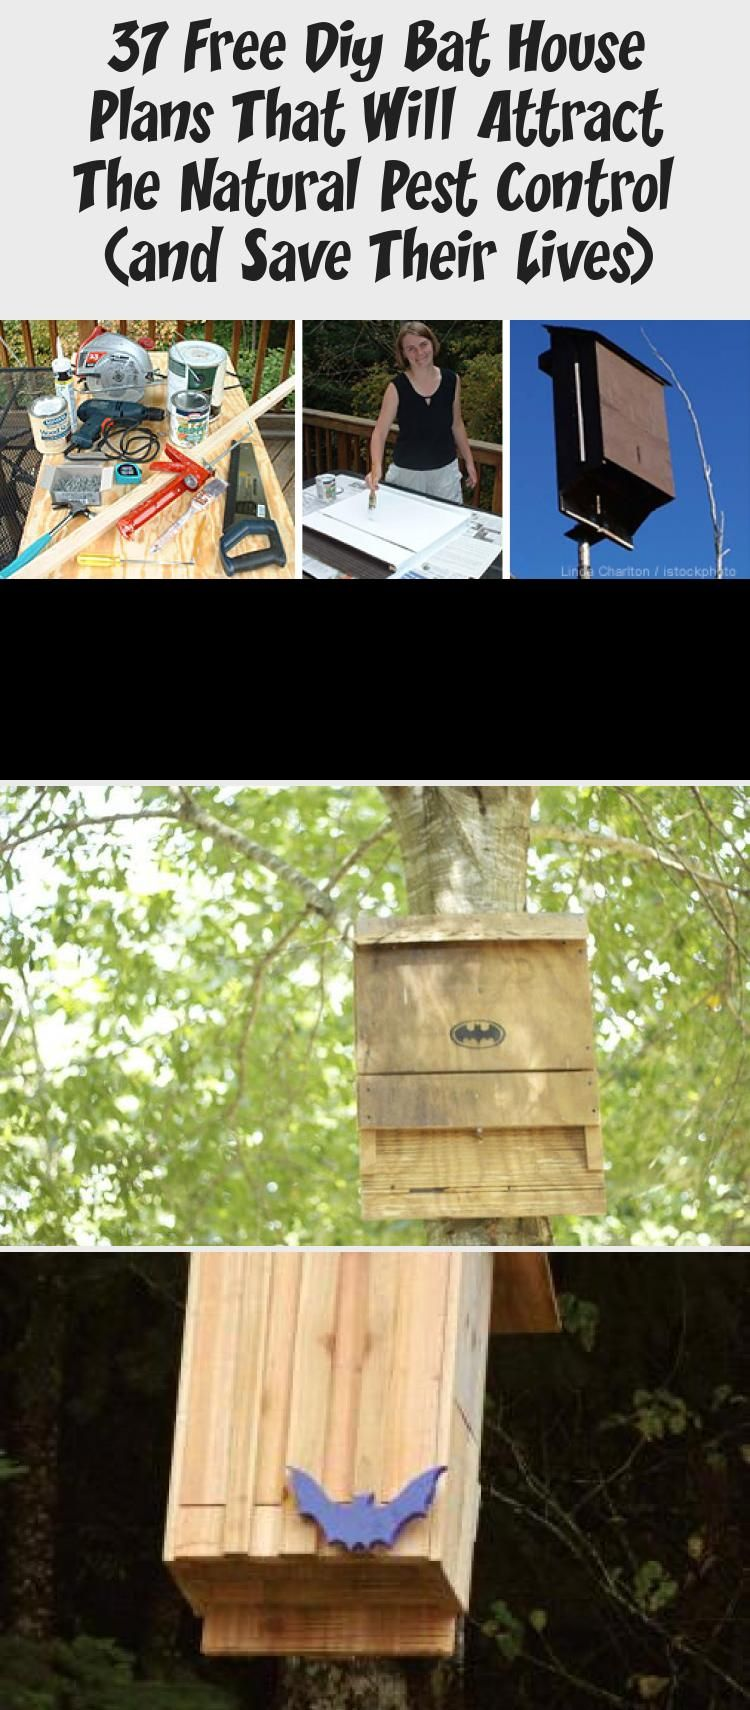 37 free diy bat house plans that will attract the natural